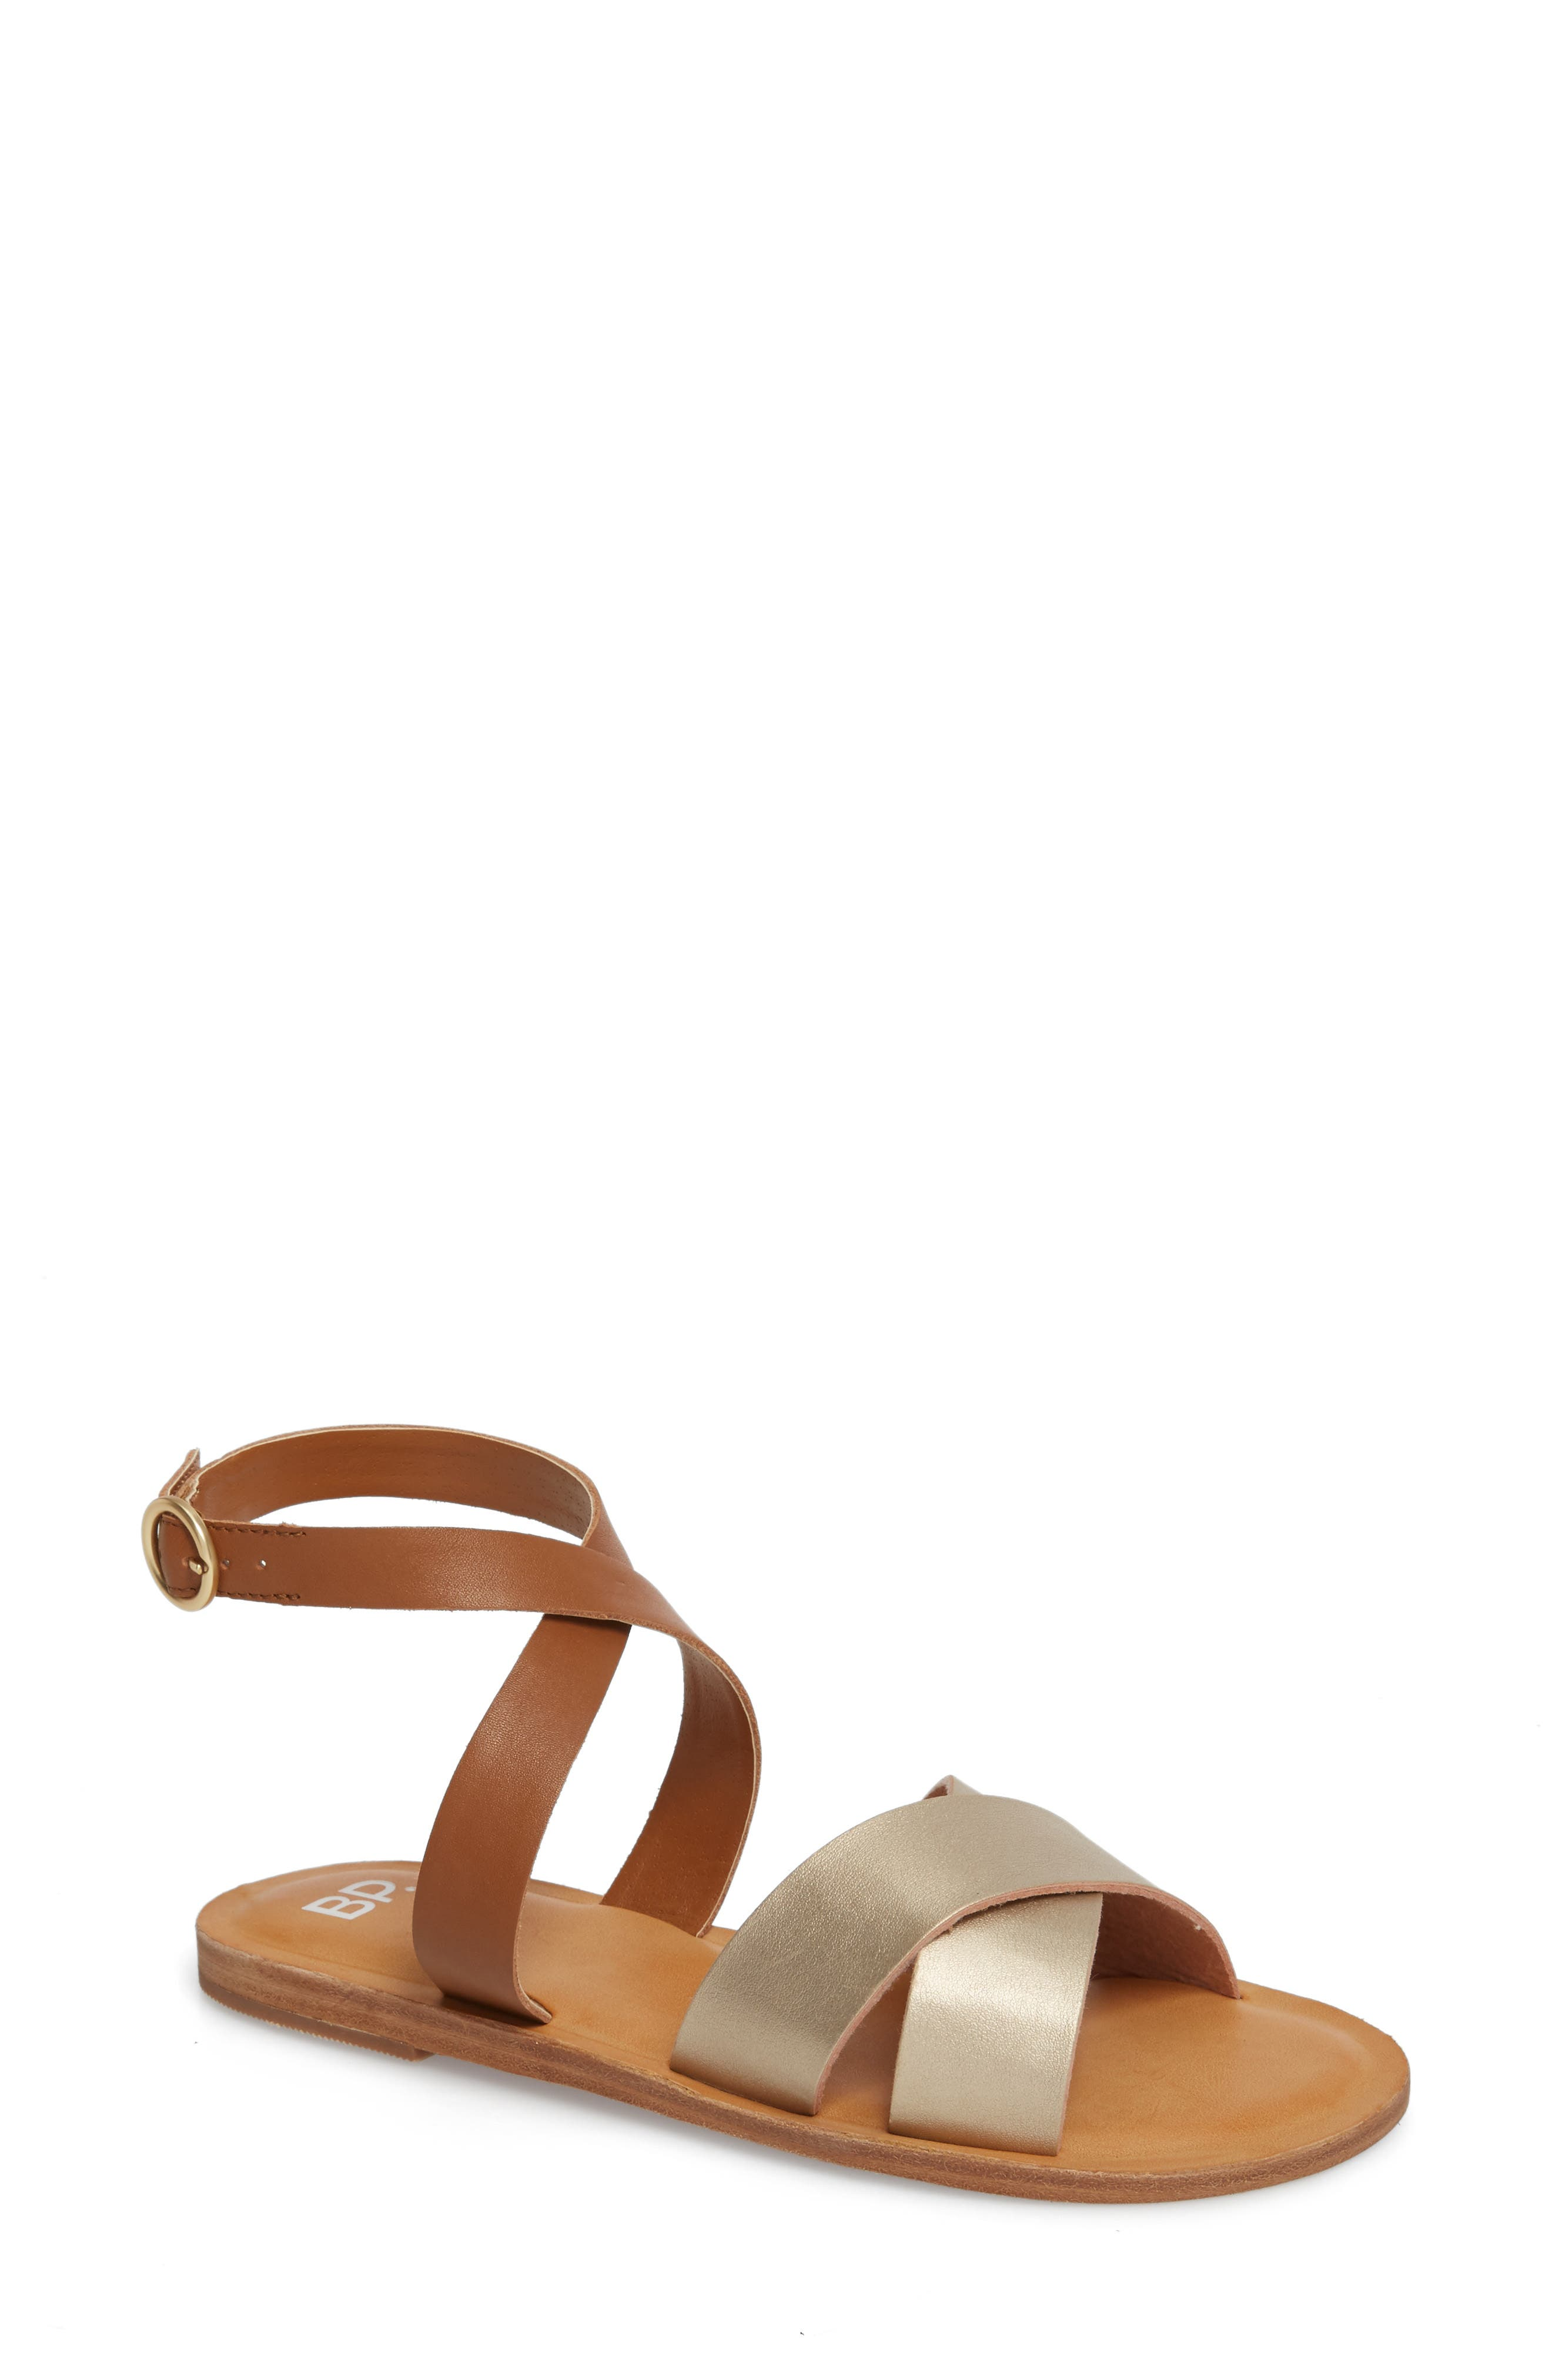 Reed Strappy Flat Sandal,                             Main thumbnail 1, color,                             Gold/Cognac